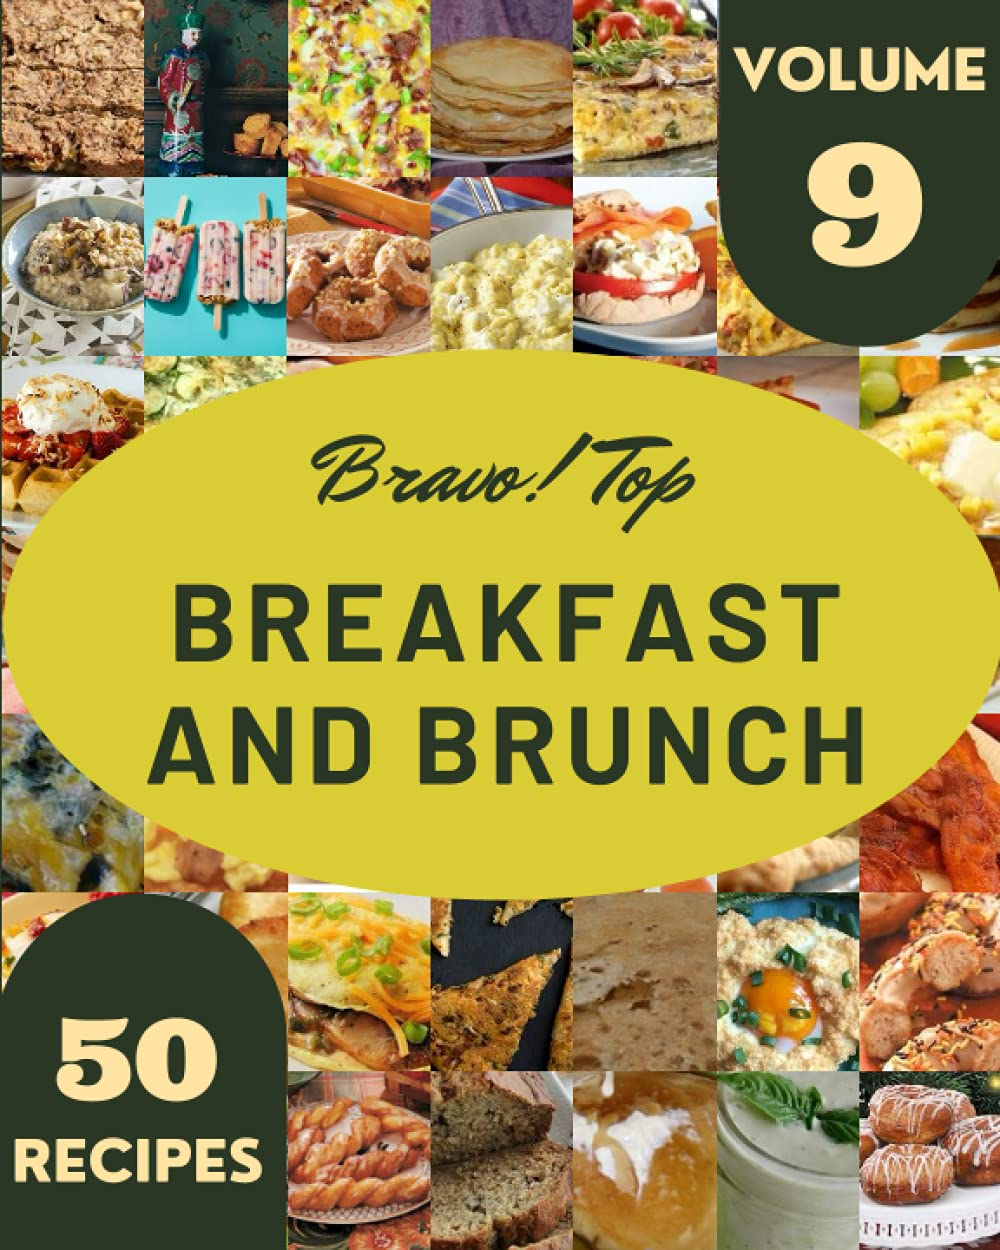 Bravo! Top 50 Breakfast And Brunch Recipes Volume 9: The Best-ever of Breakfast And Brunch Cookbook